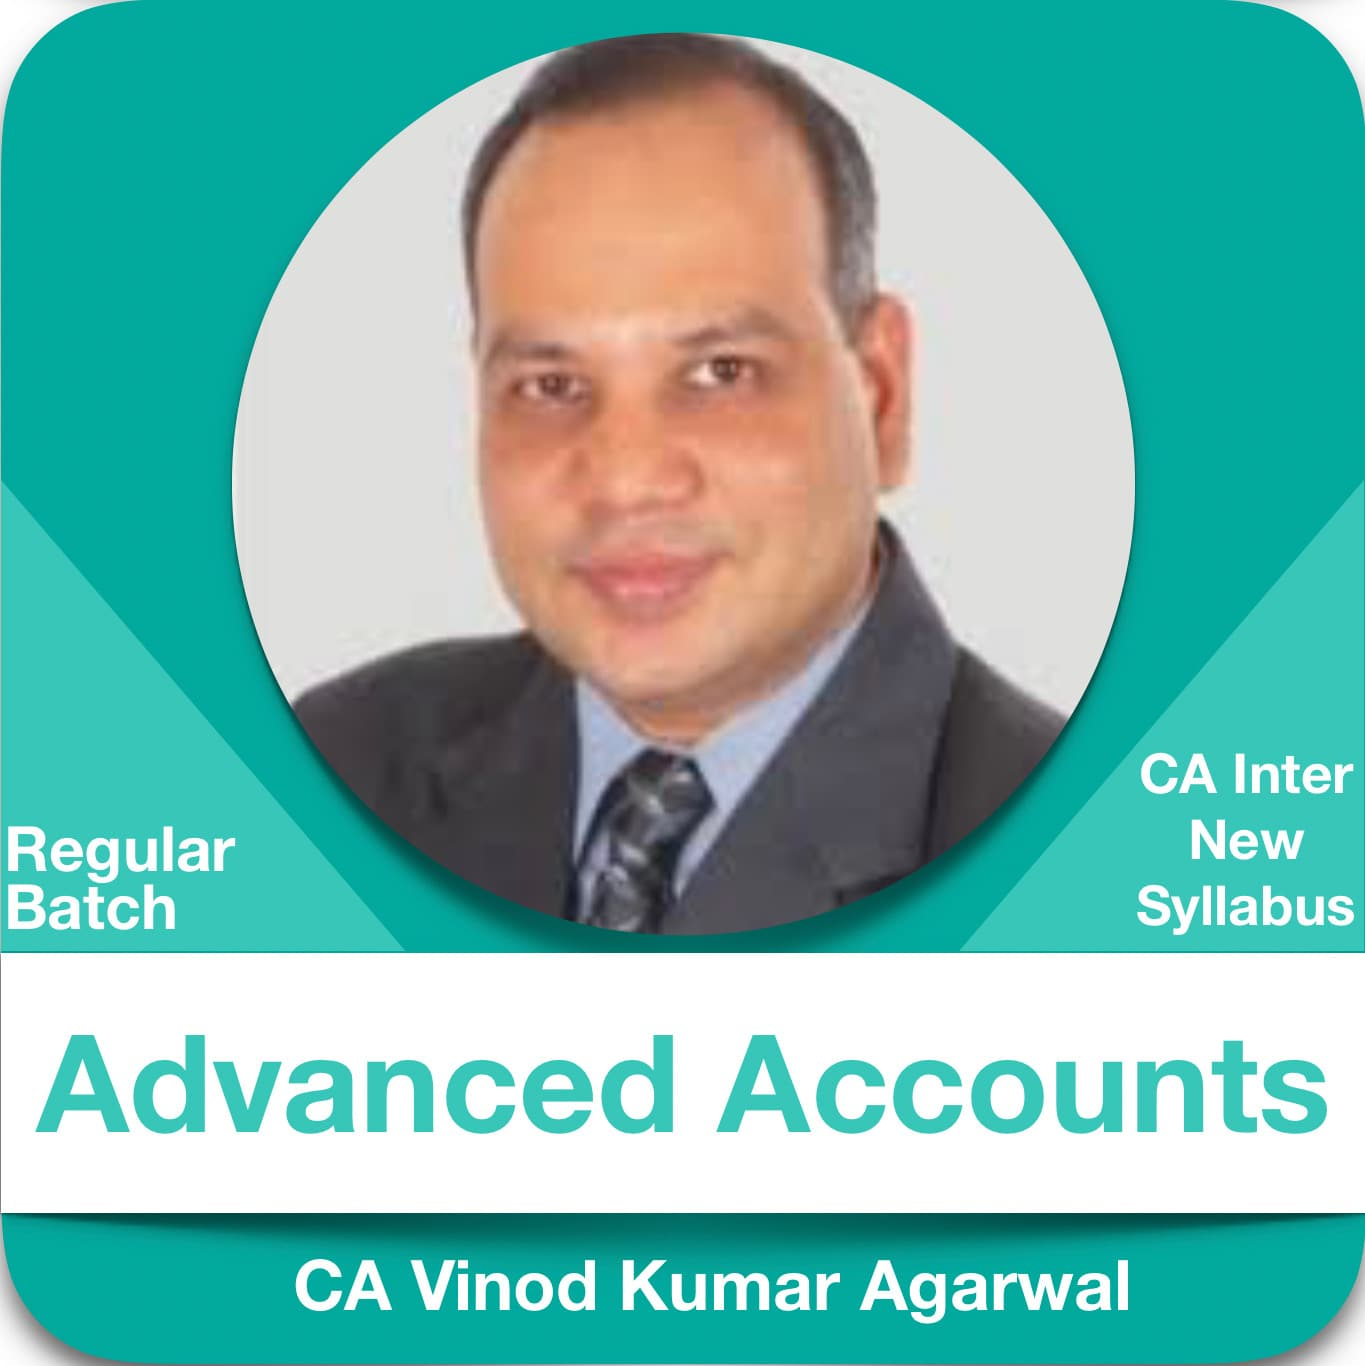 Advanced Accounting Regular Batch in Hindi ( 1.2 & 1.5 View )